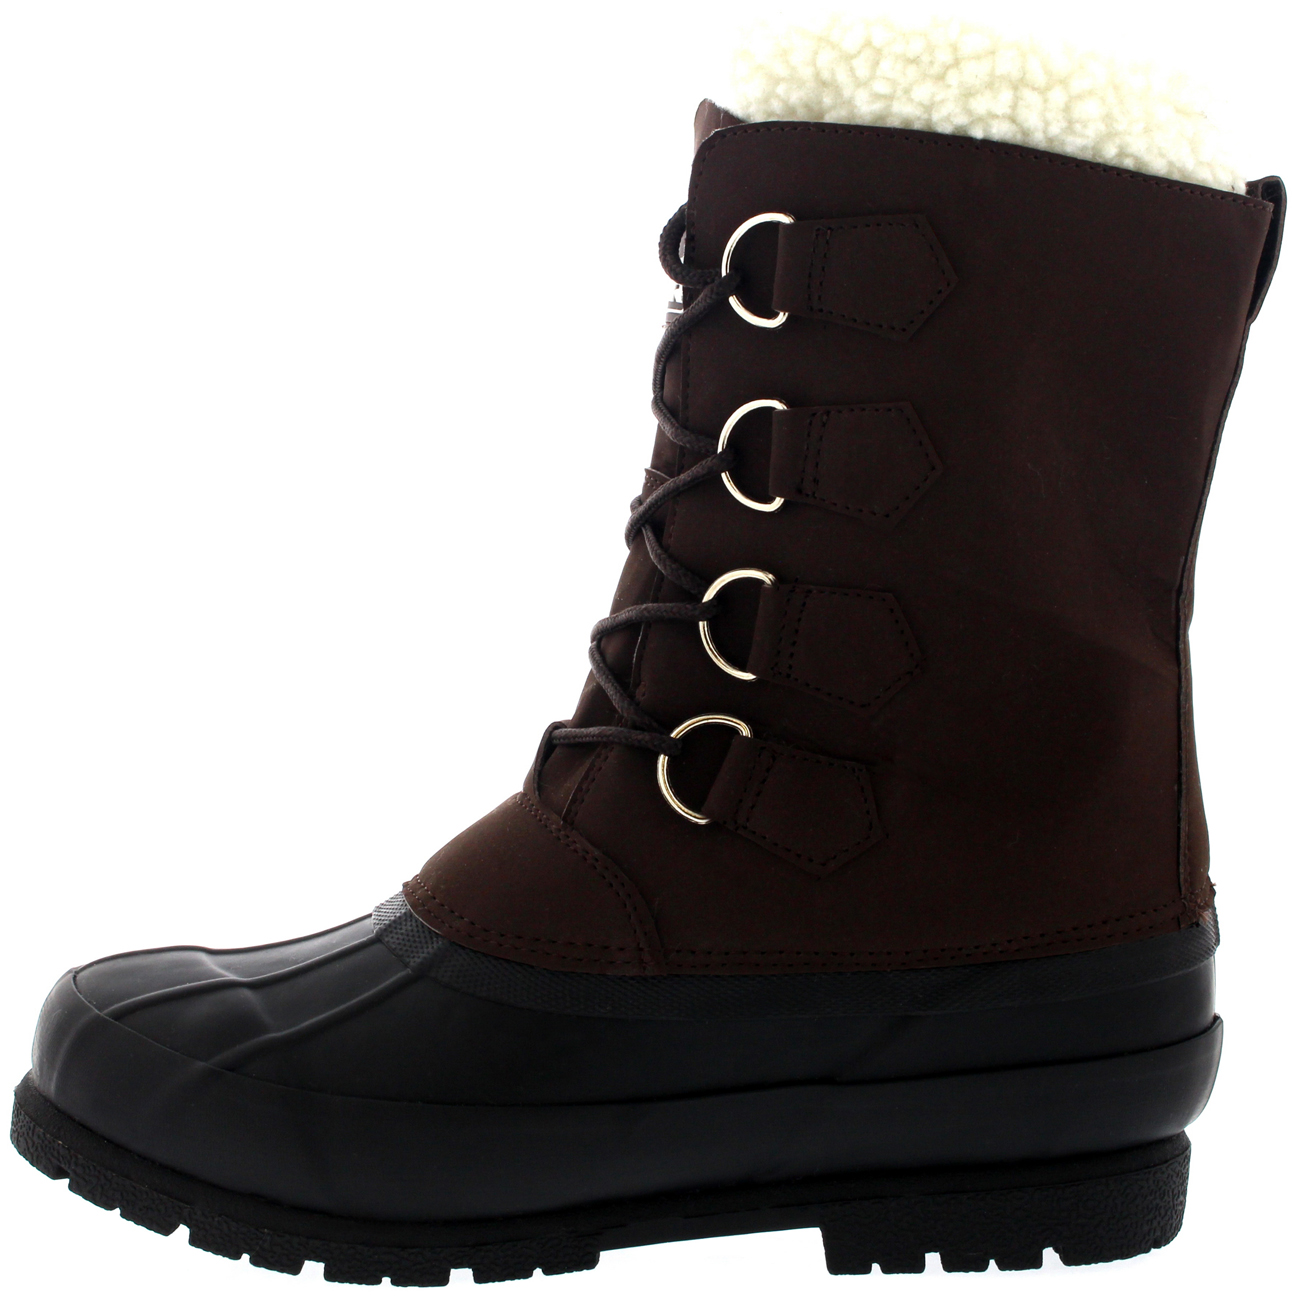 Boots Winter Wool Mens Lining